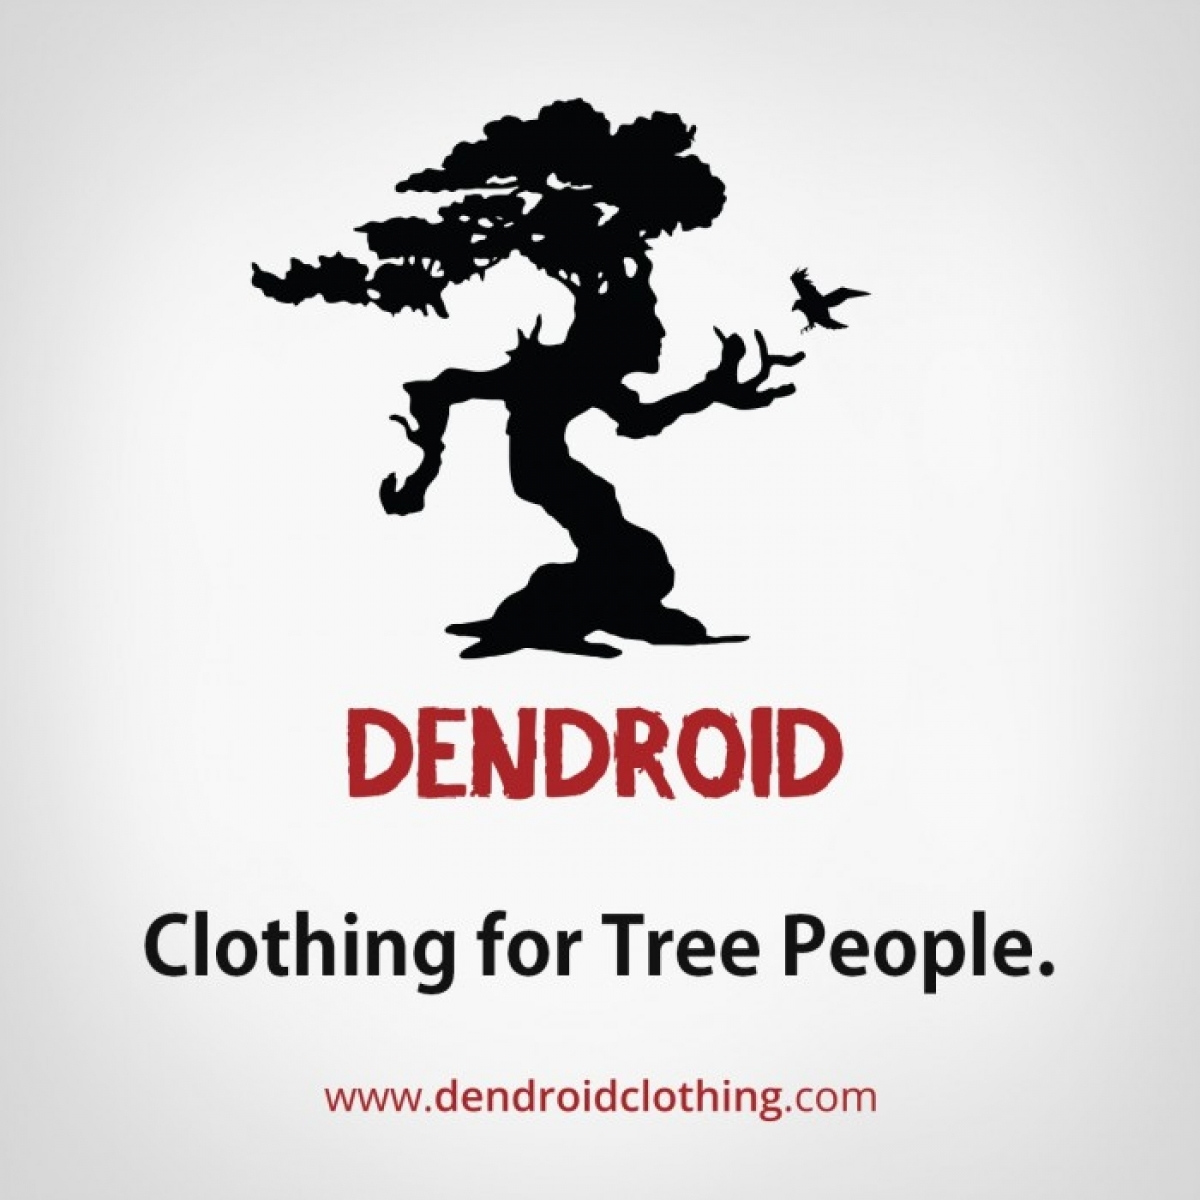 dendroid_-_clothing_for_tree_people_-_copy.jpg